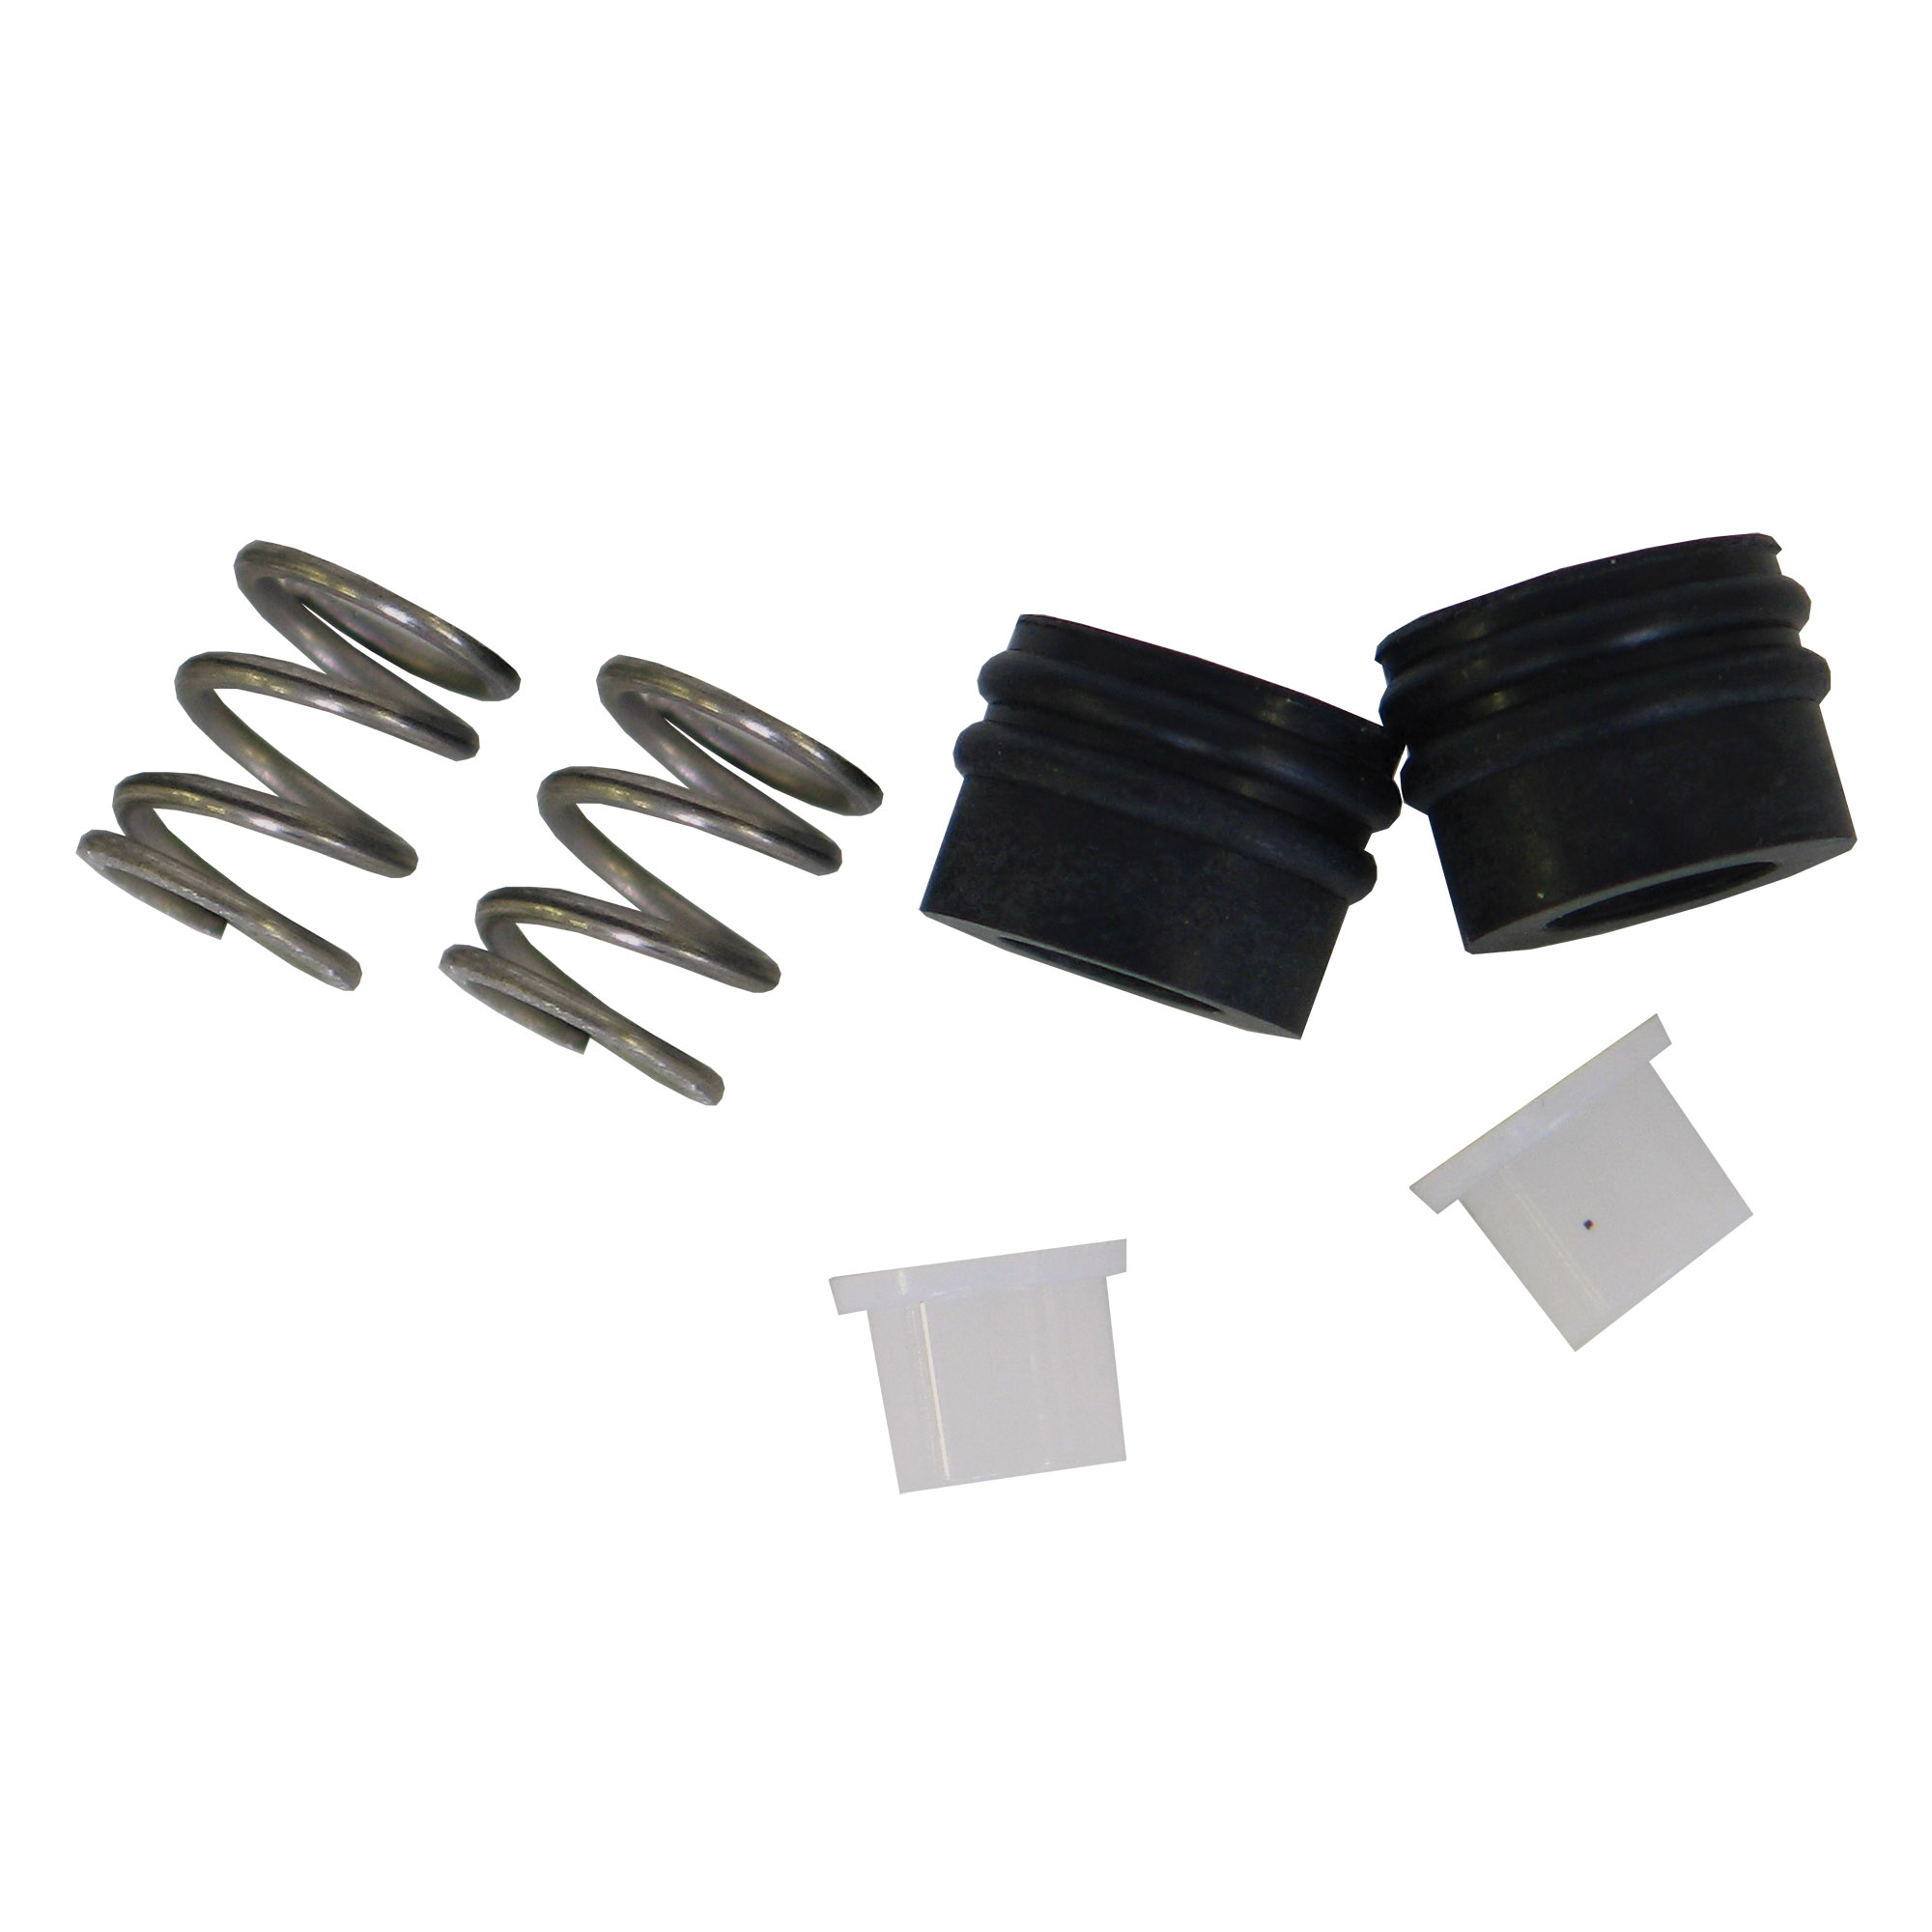 Kissler 7PB7059 Seat and Spring Kit, For Use With Valley Faucet Stem